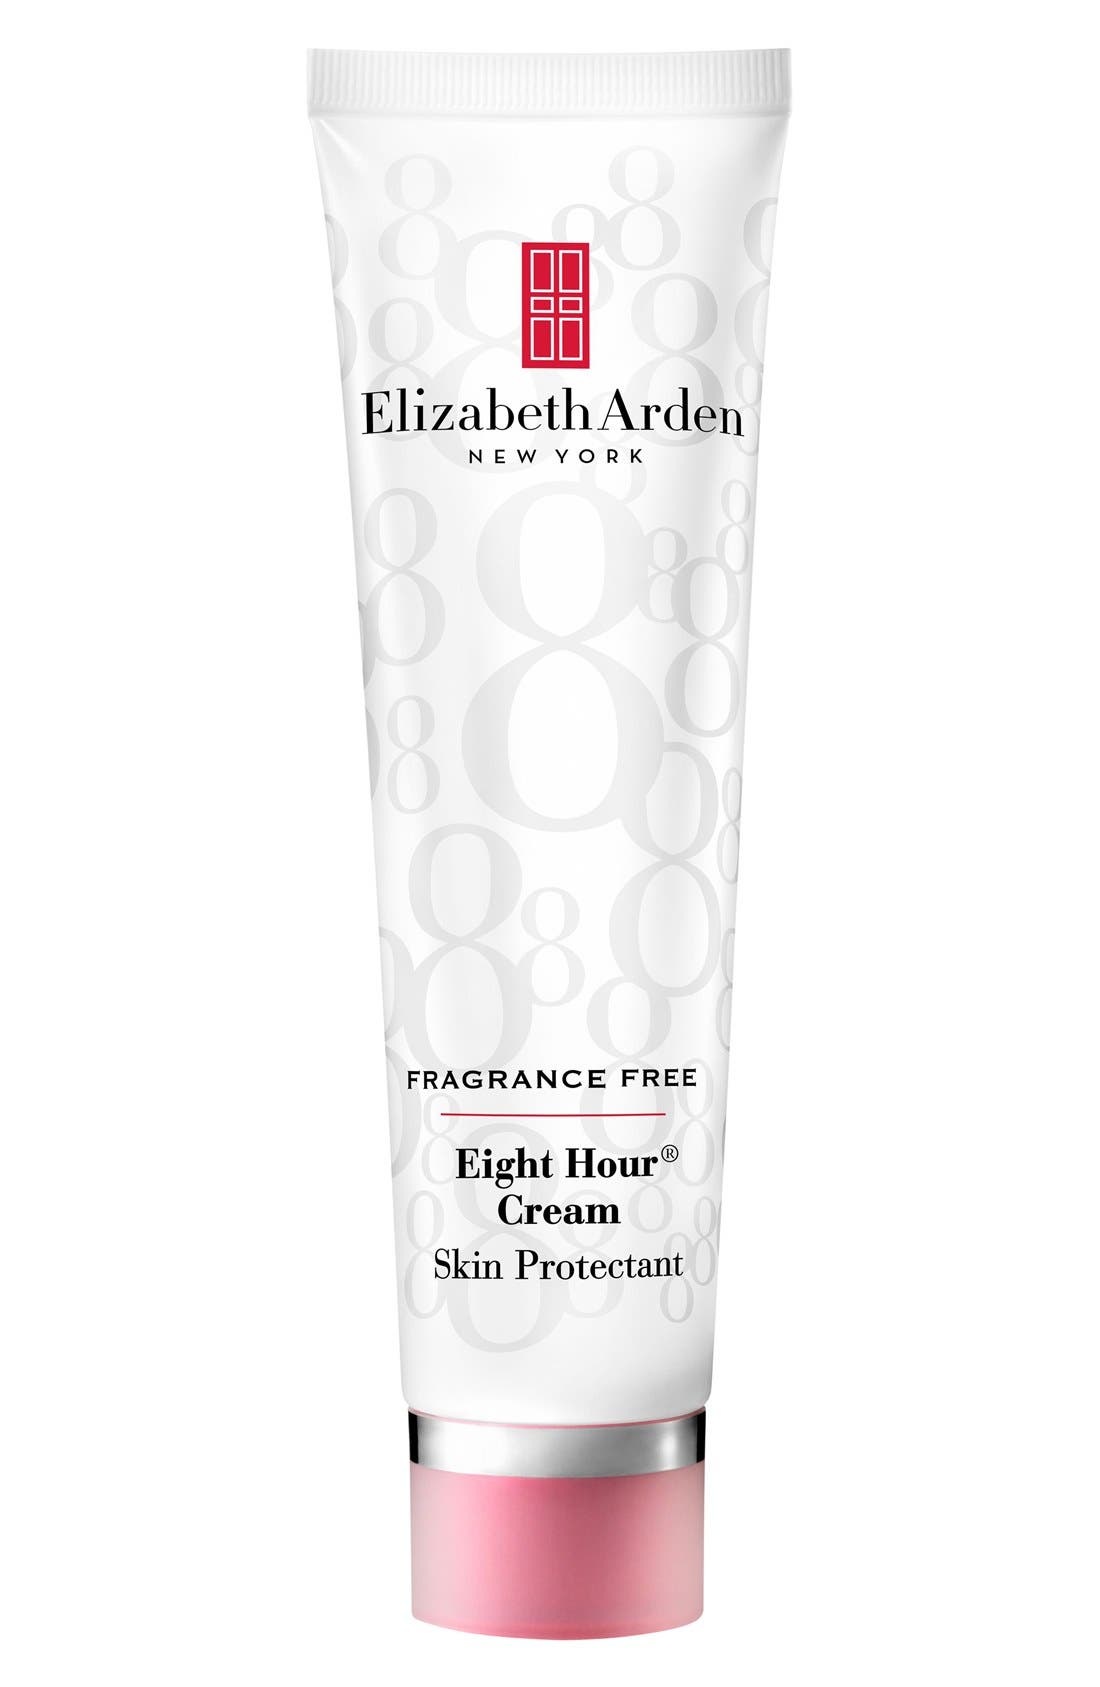 Elizabeth Arden Eight Hour® Cream Fragrance-Free Skin Protectant